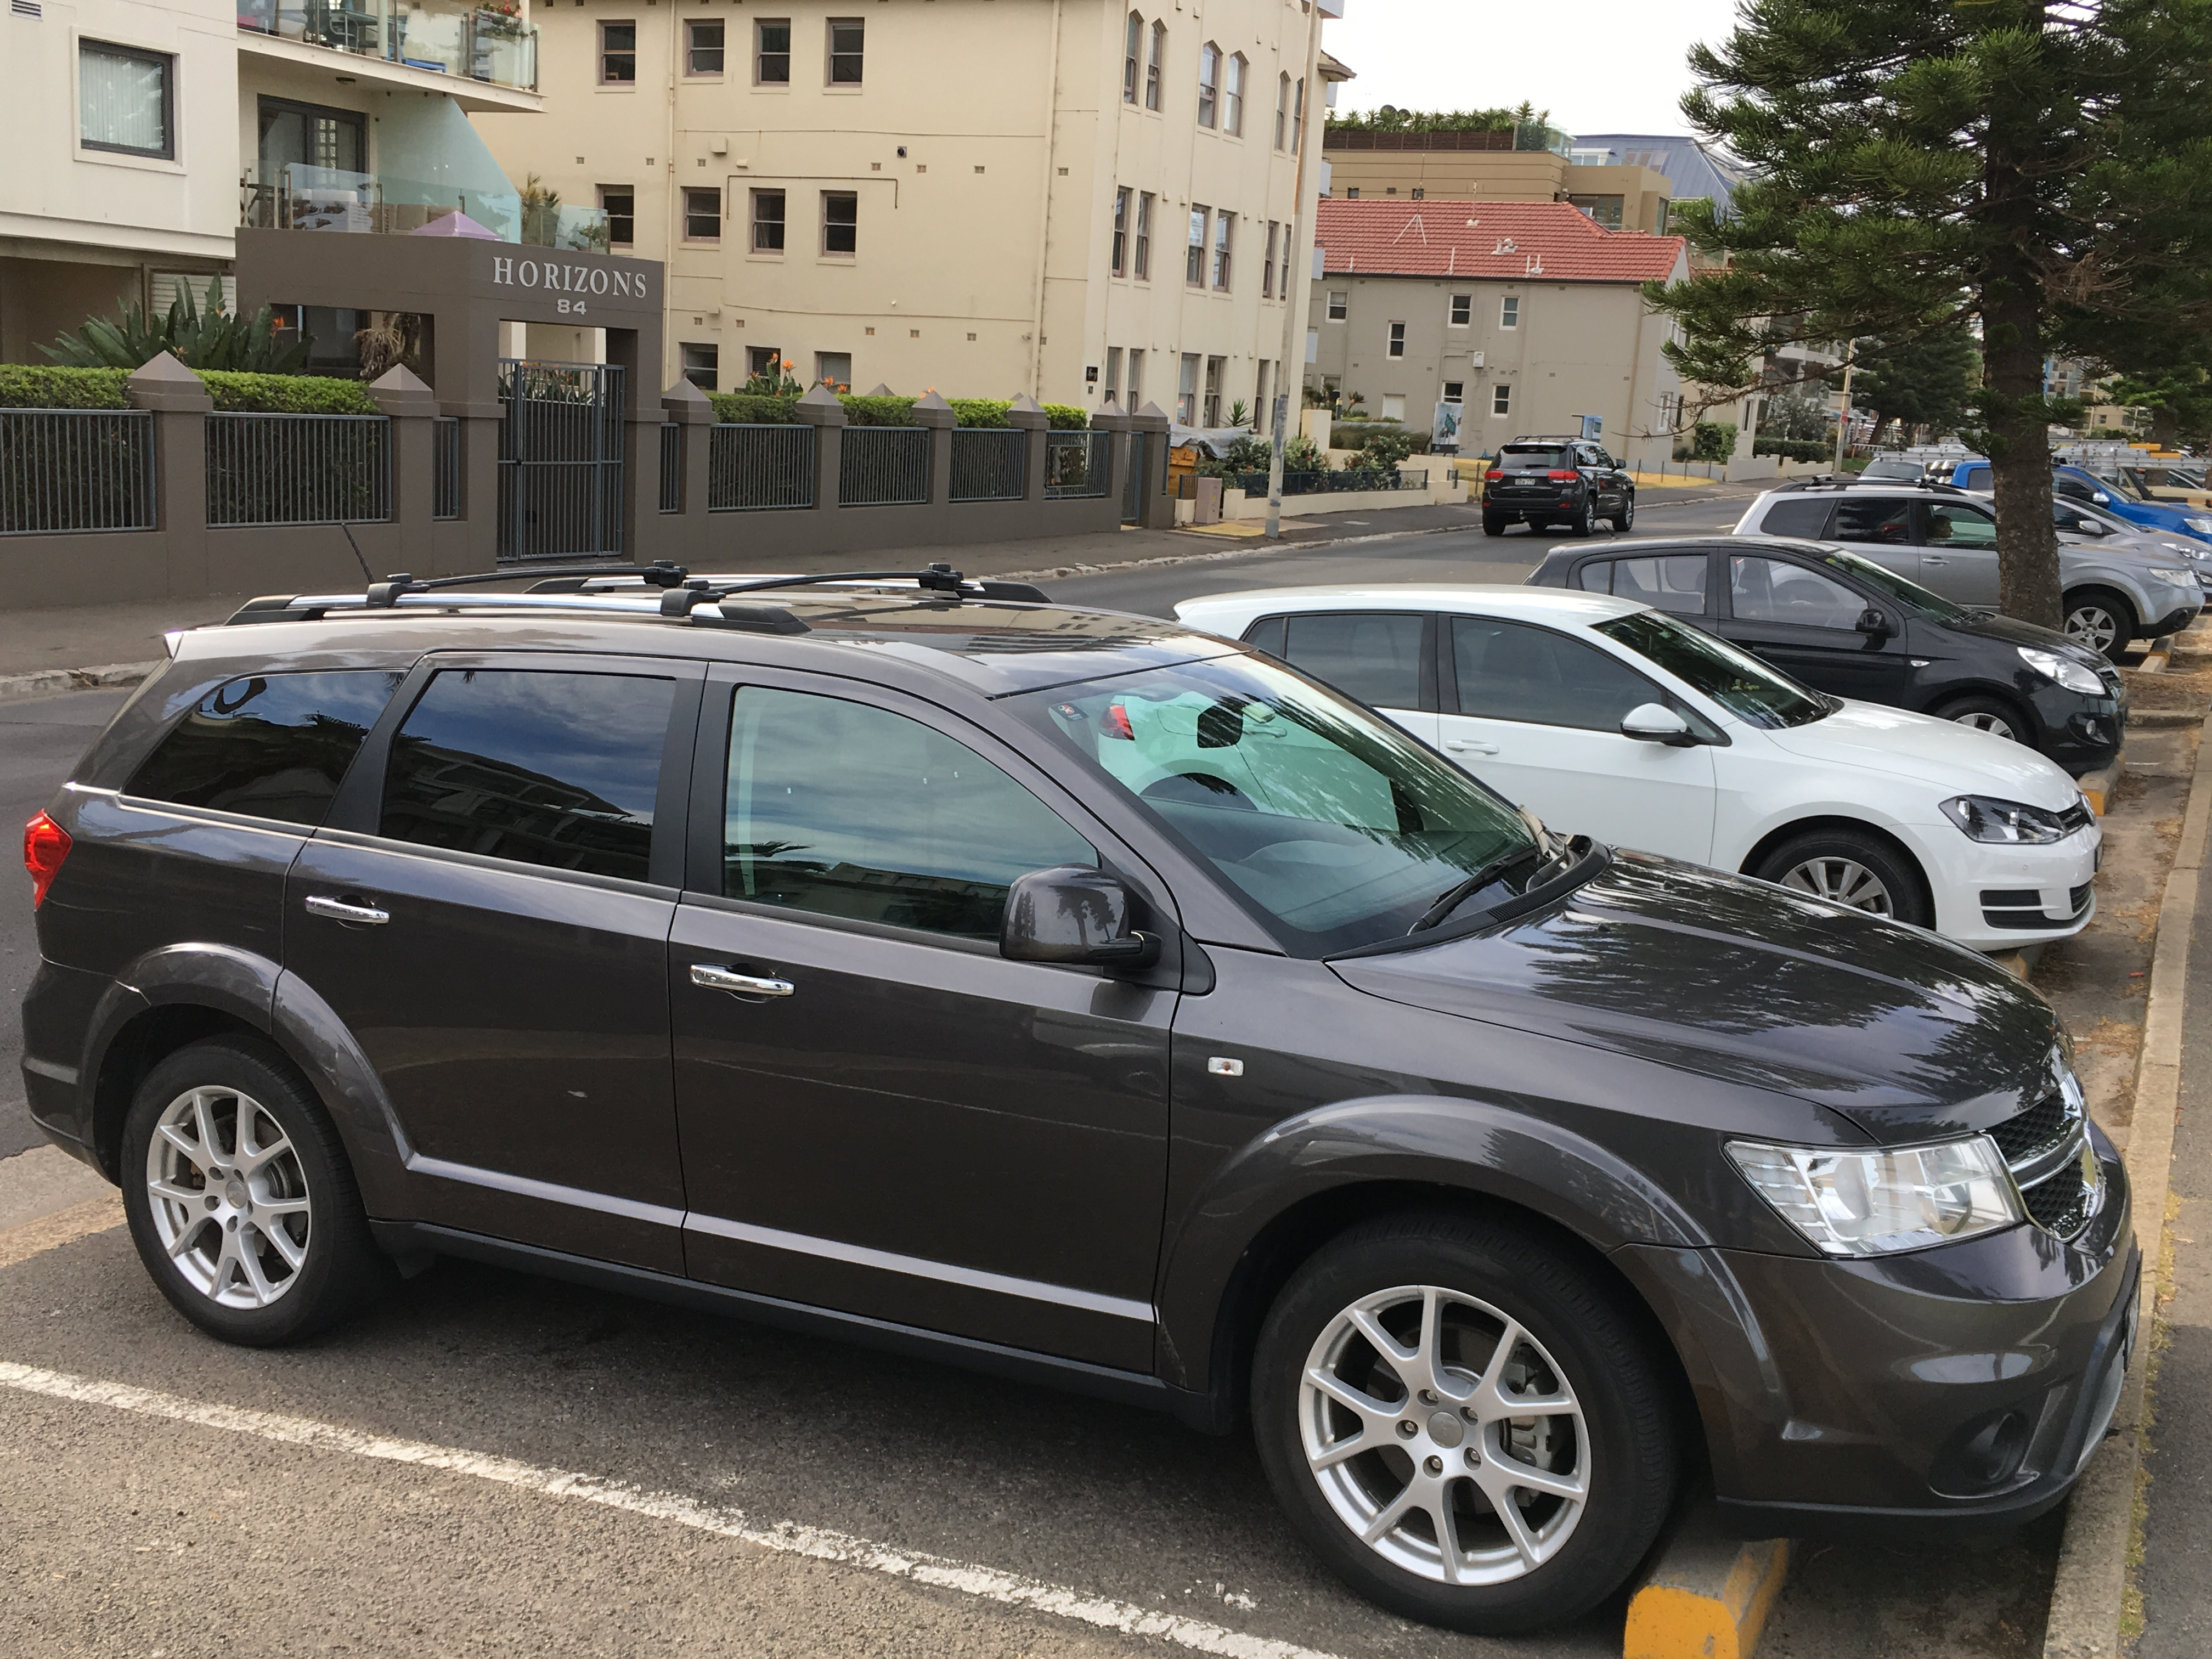 Picture of Fabian's 2014 Dodge Journey